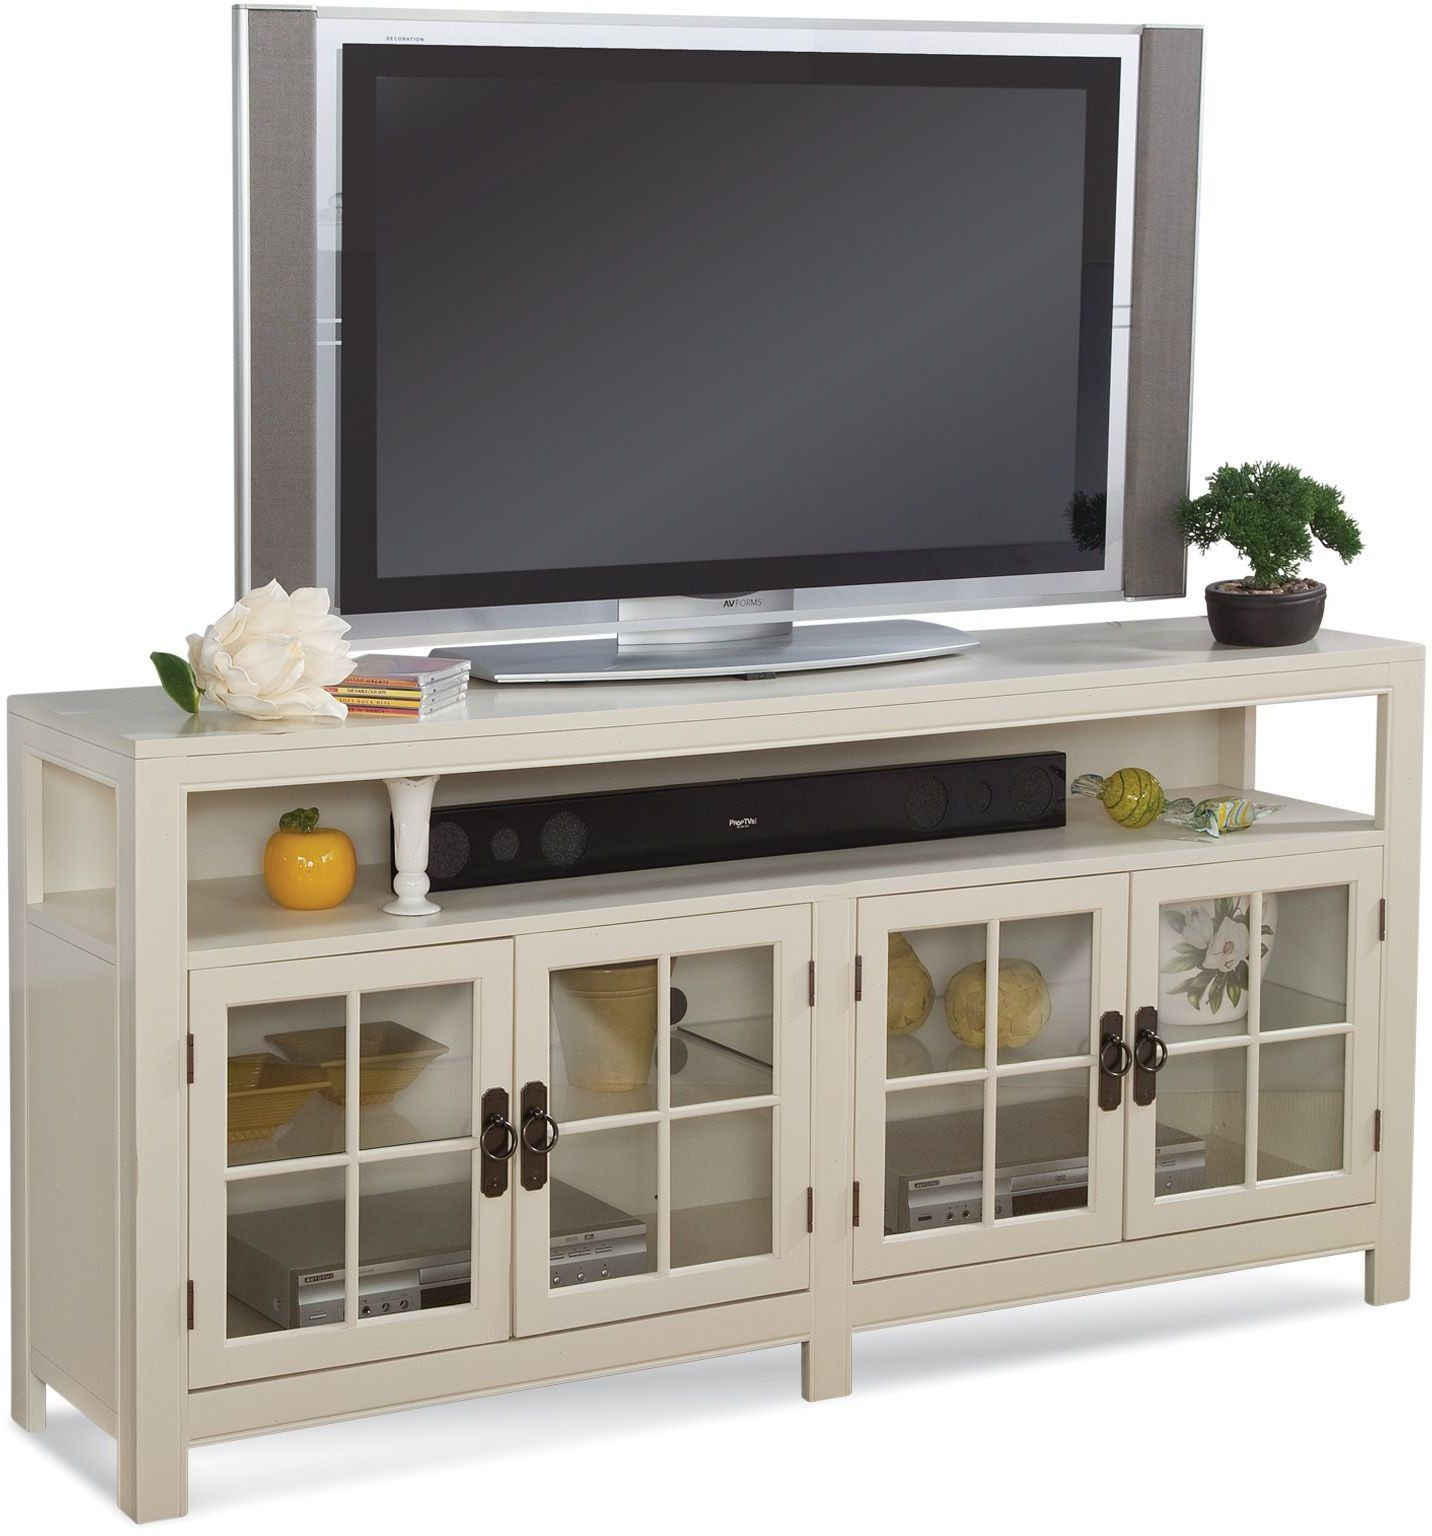 Color time saybrook sandshell white tv console from philip White tv console